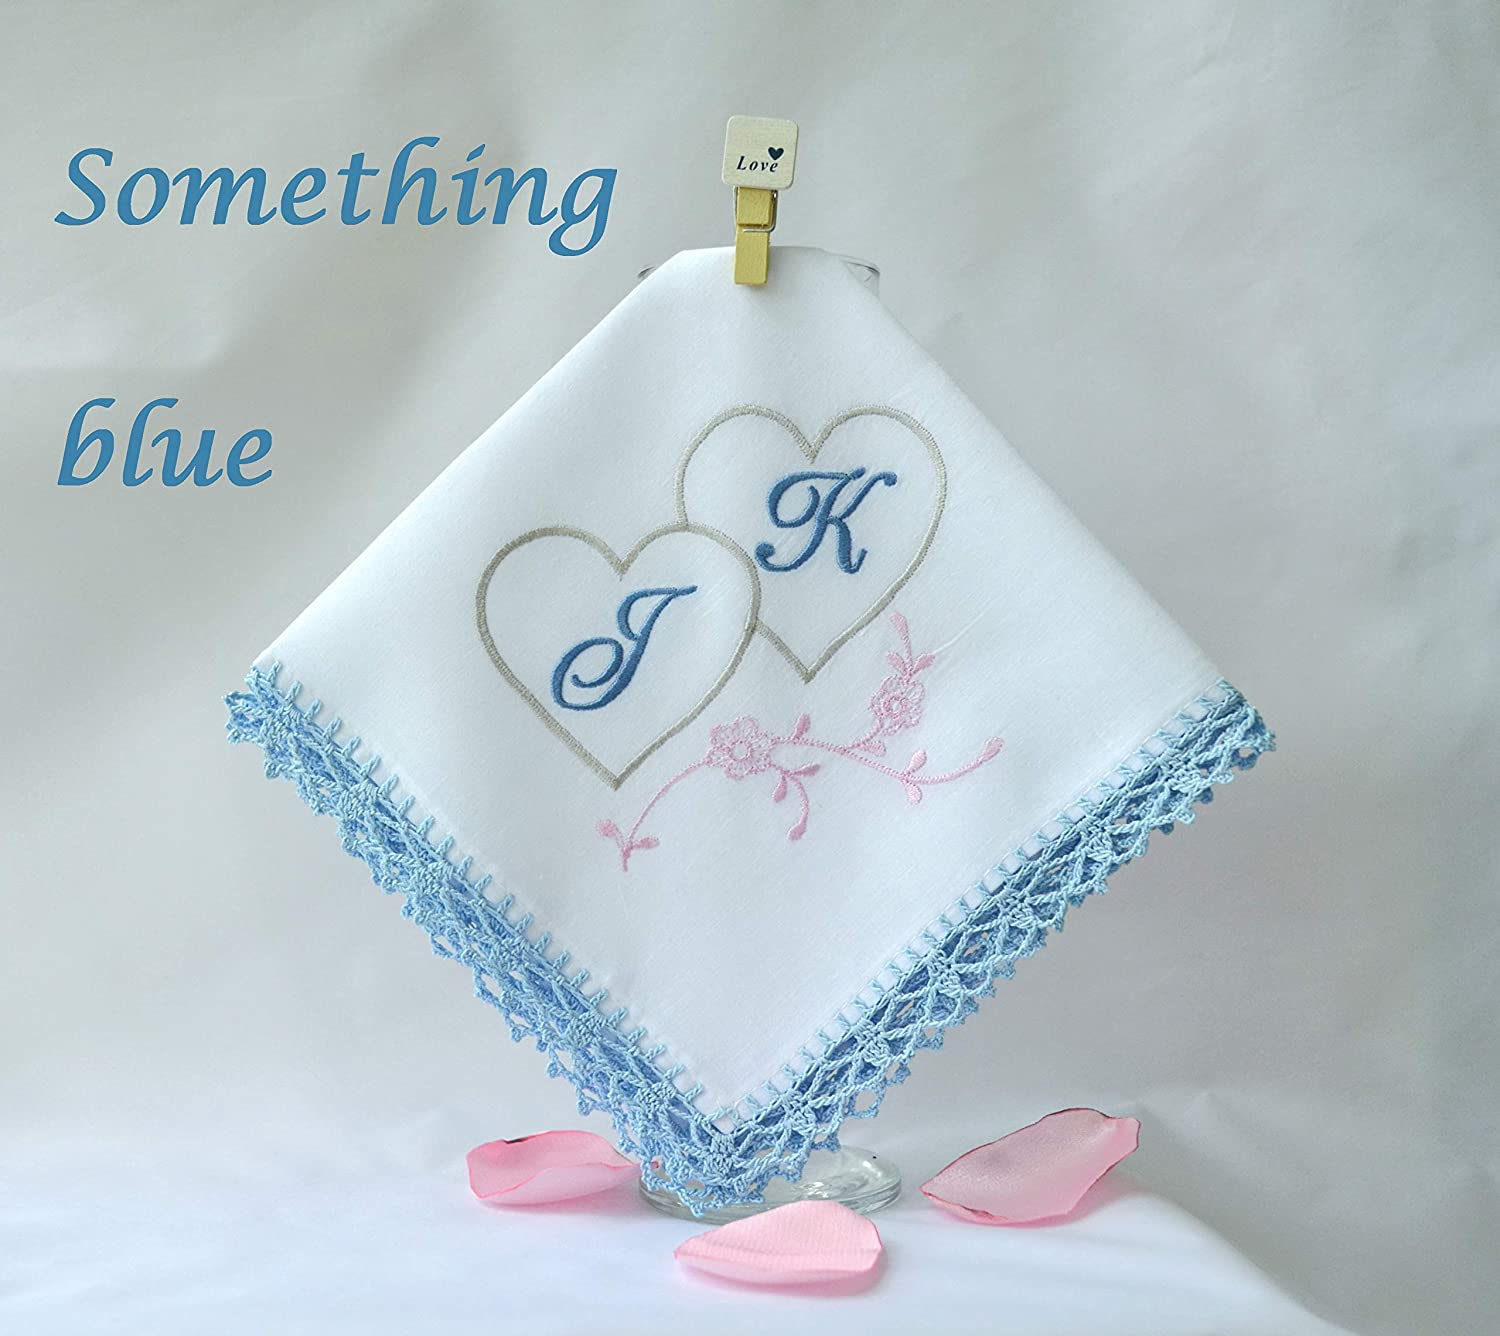 B07G9Q1T4H Personalized Monogrammed Handkerchief for Her Something Blue hankerchief for Couple Monogram Gift 81csJAfInAL